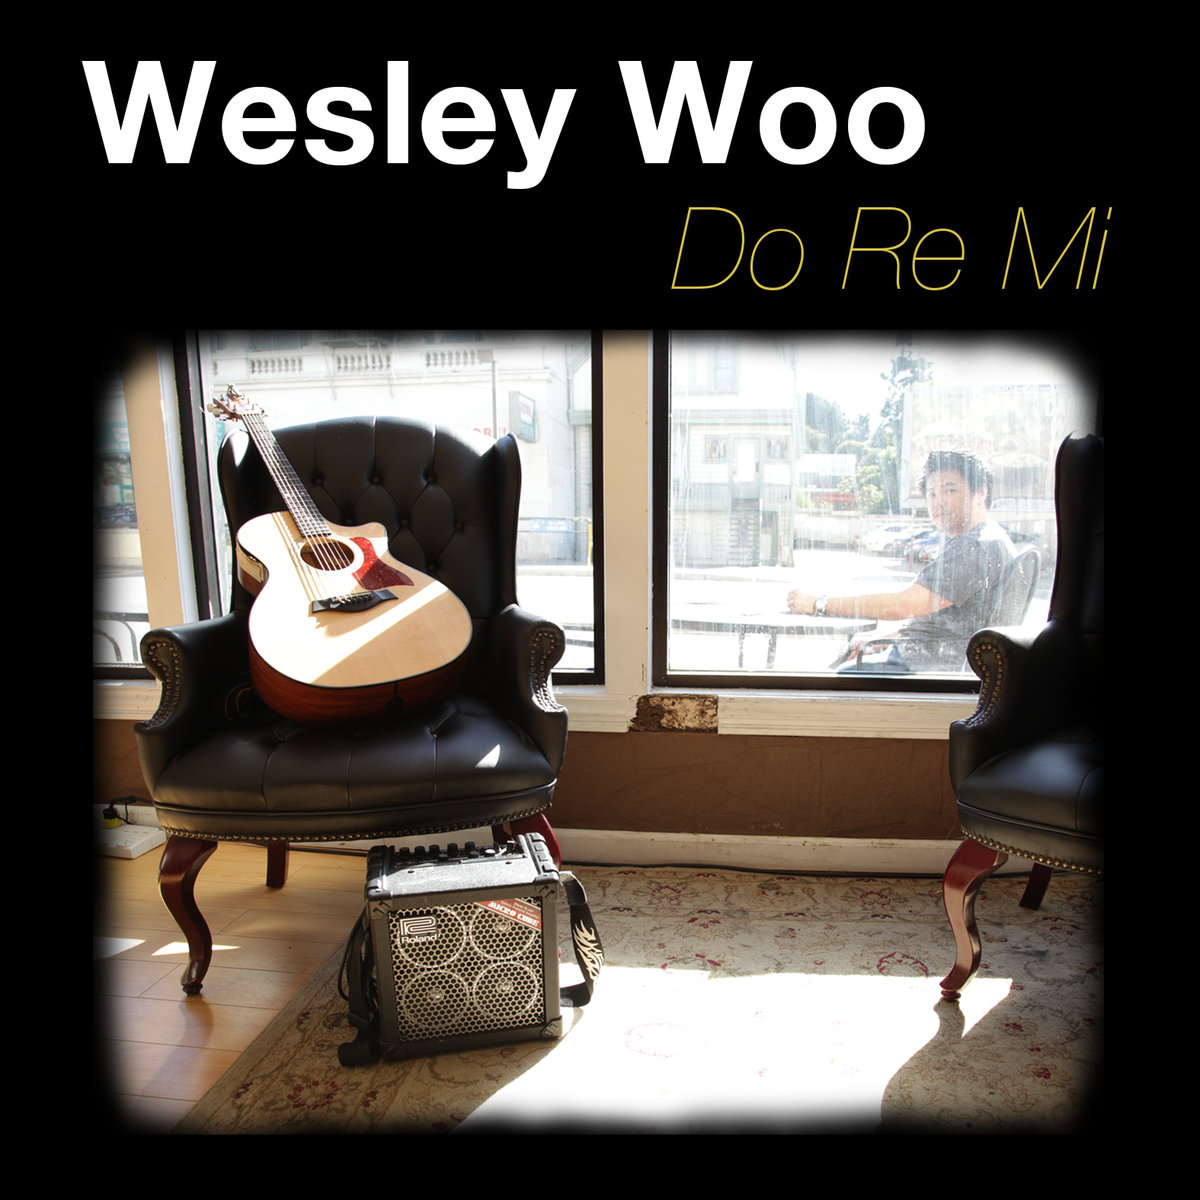 Wesley Woo - Do Re Mi @ 'Do Re Mi' album (11th ave records, 11th avenue records)